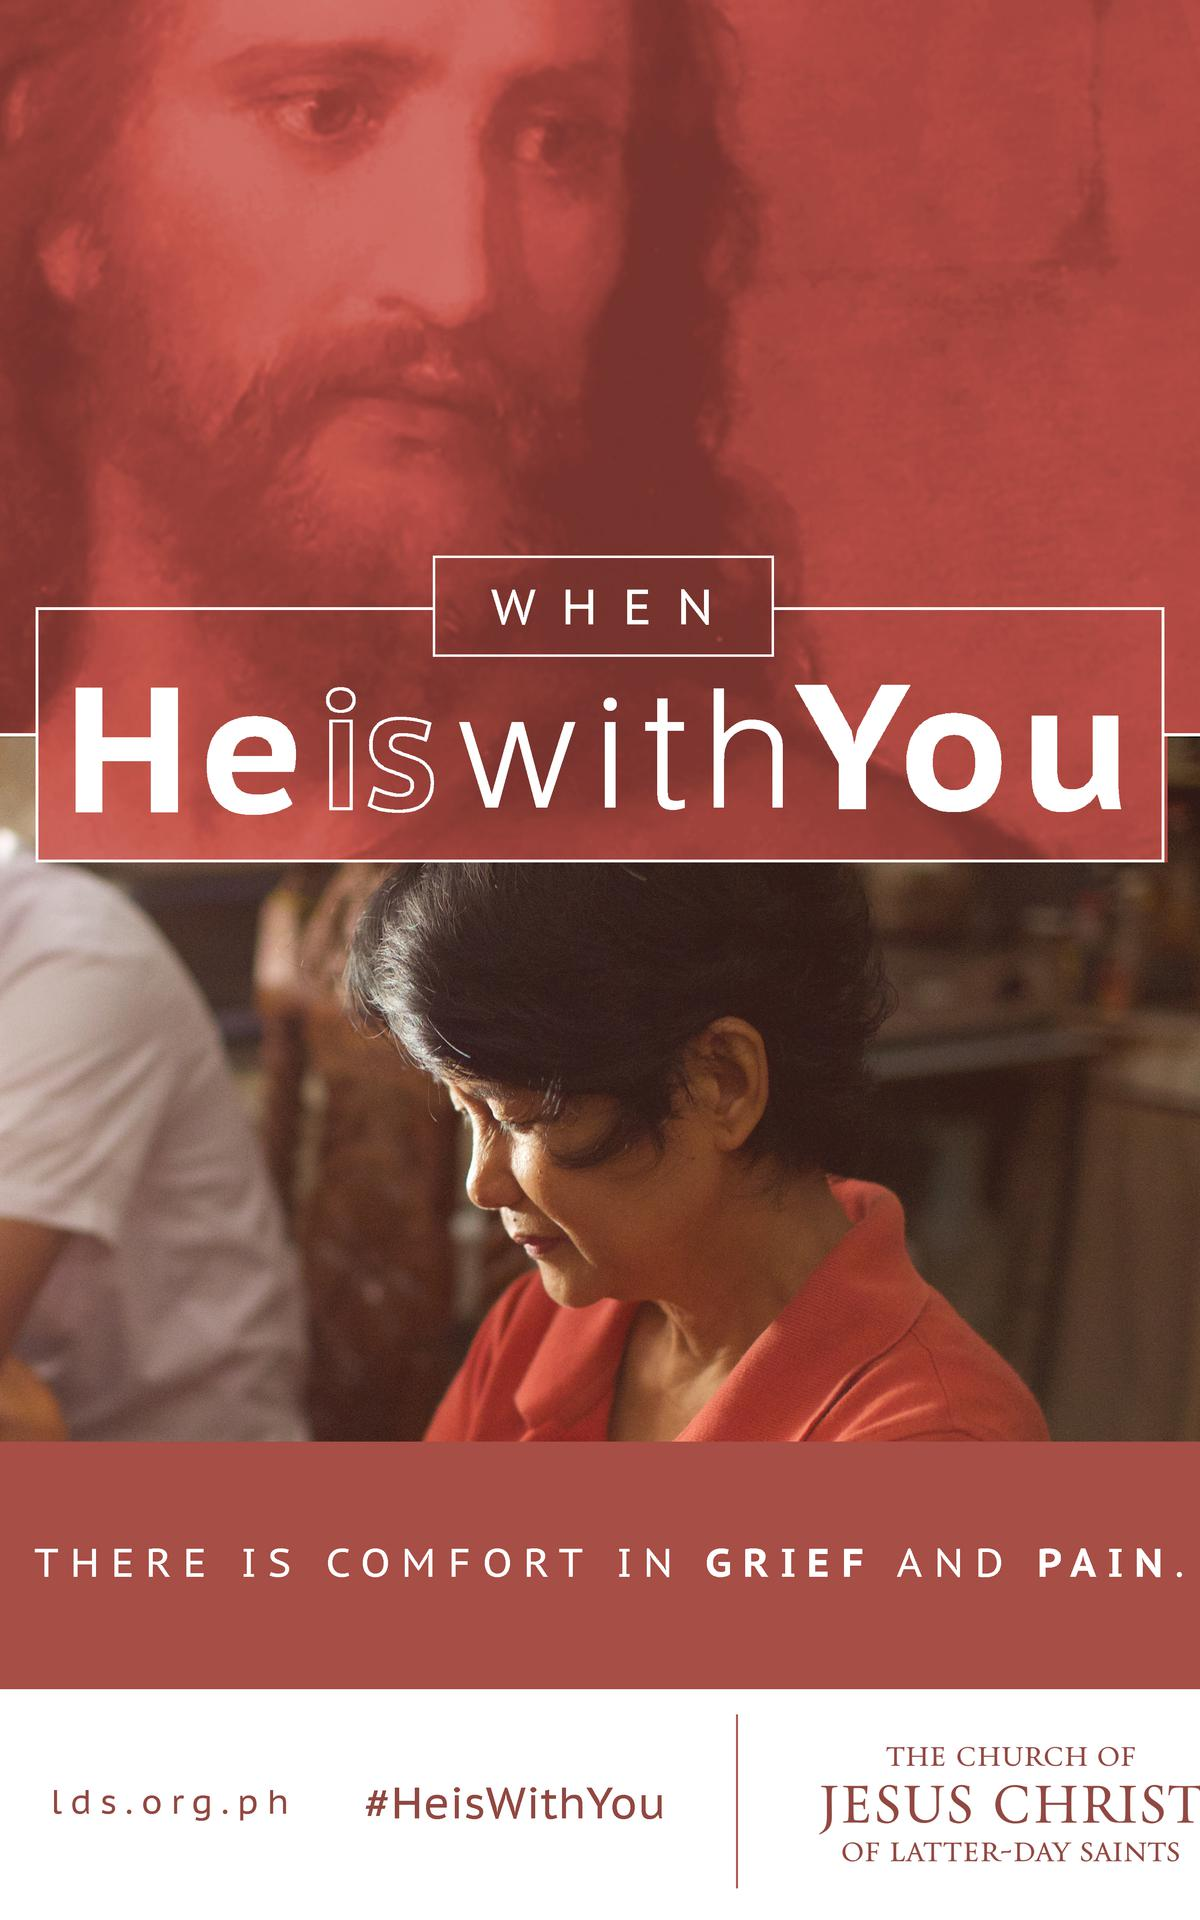 When He is with you there is comfort